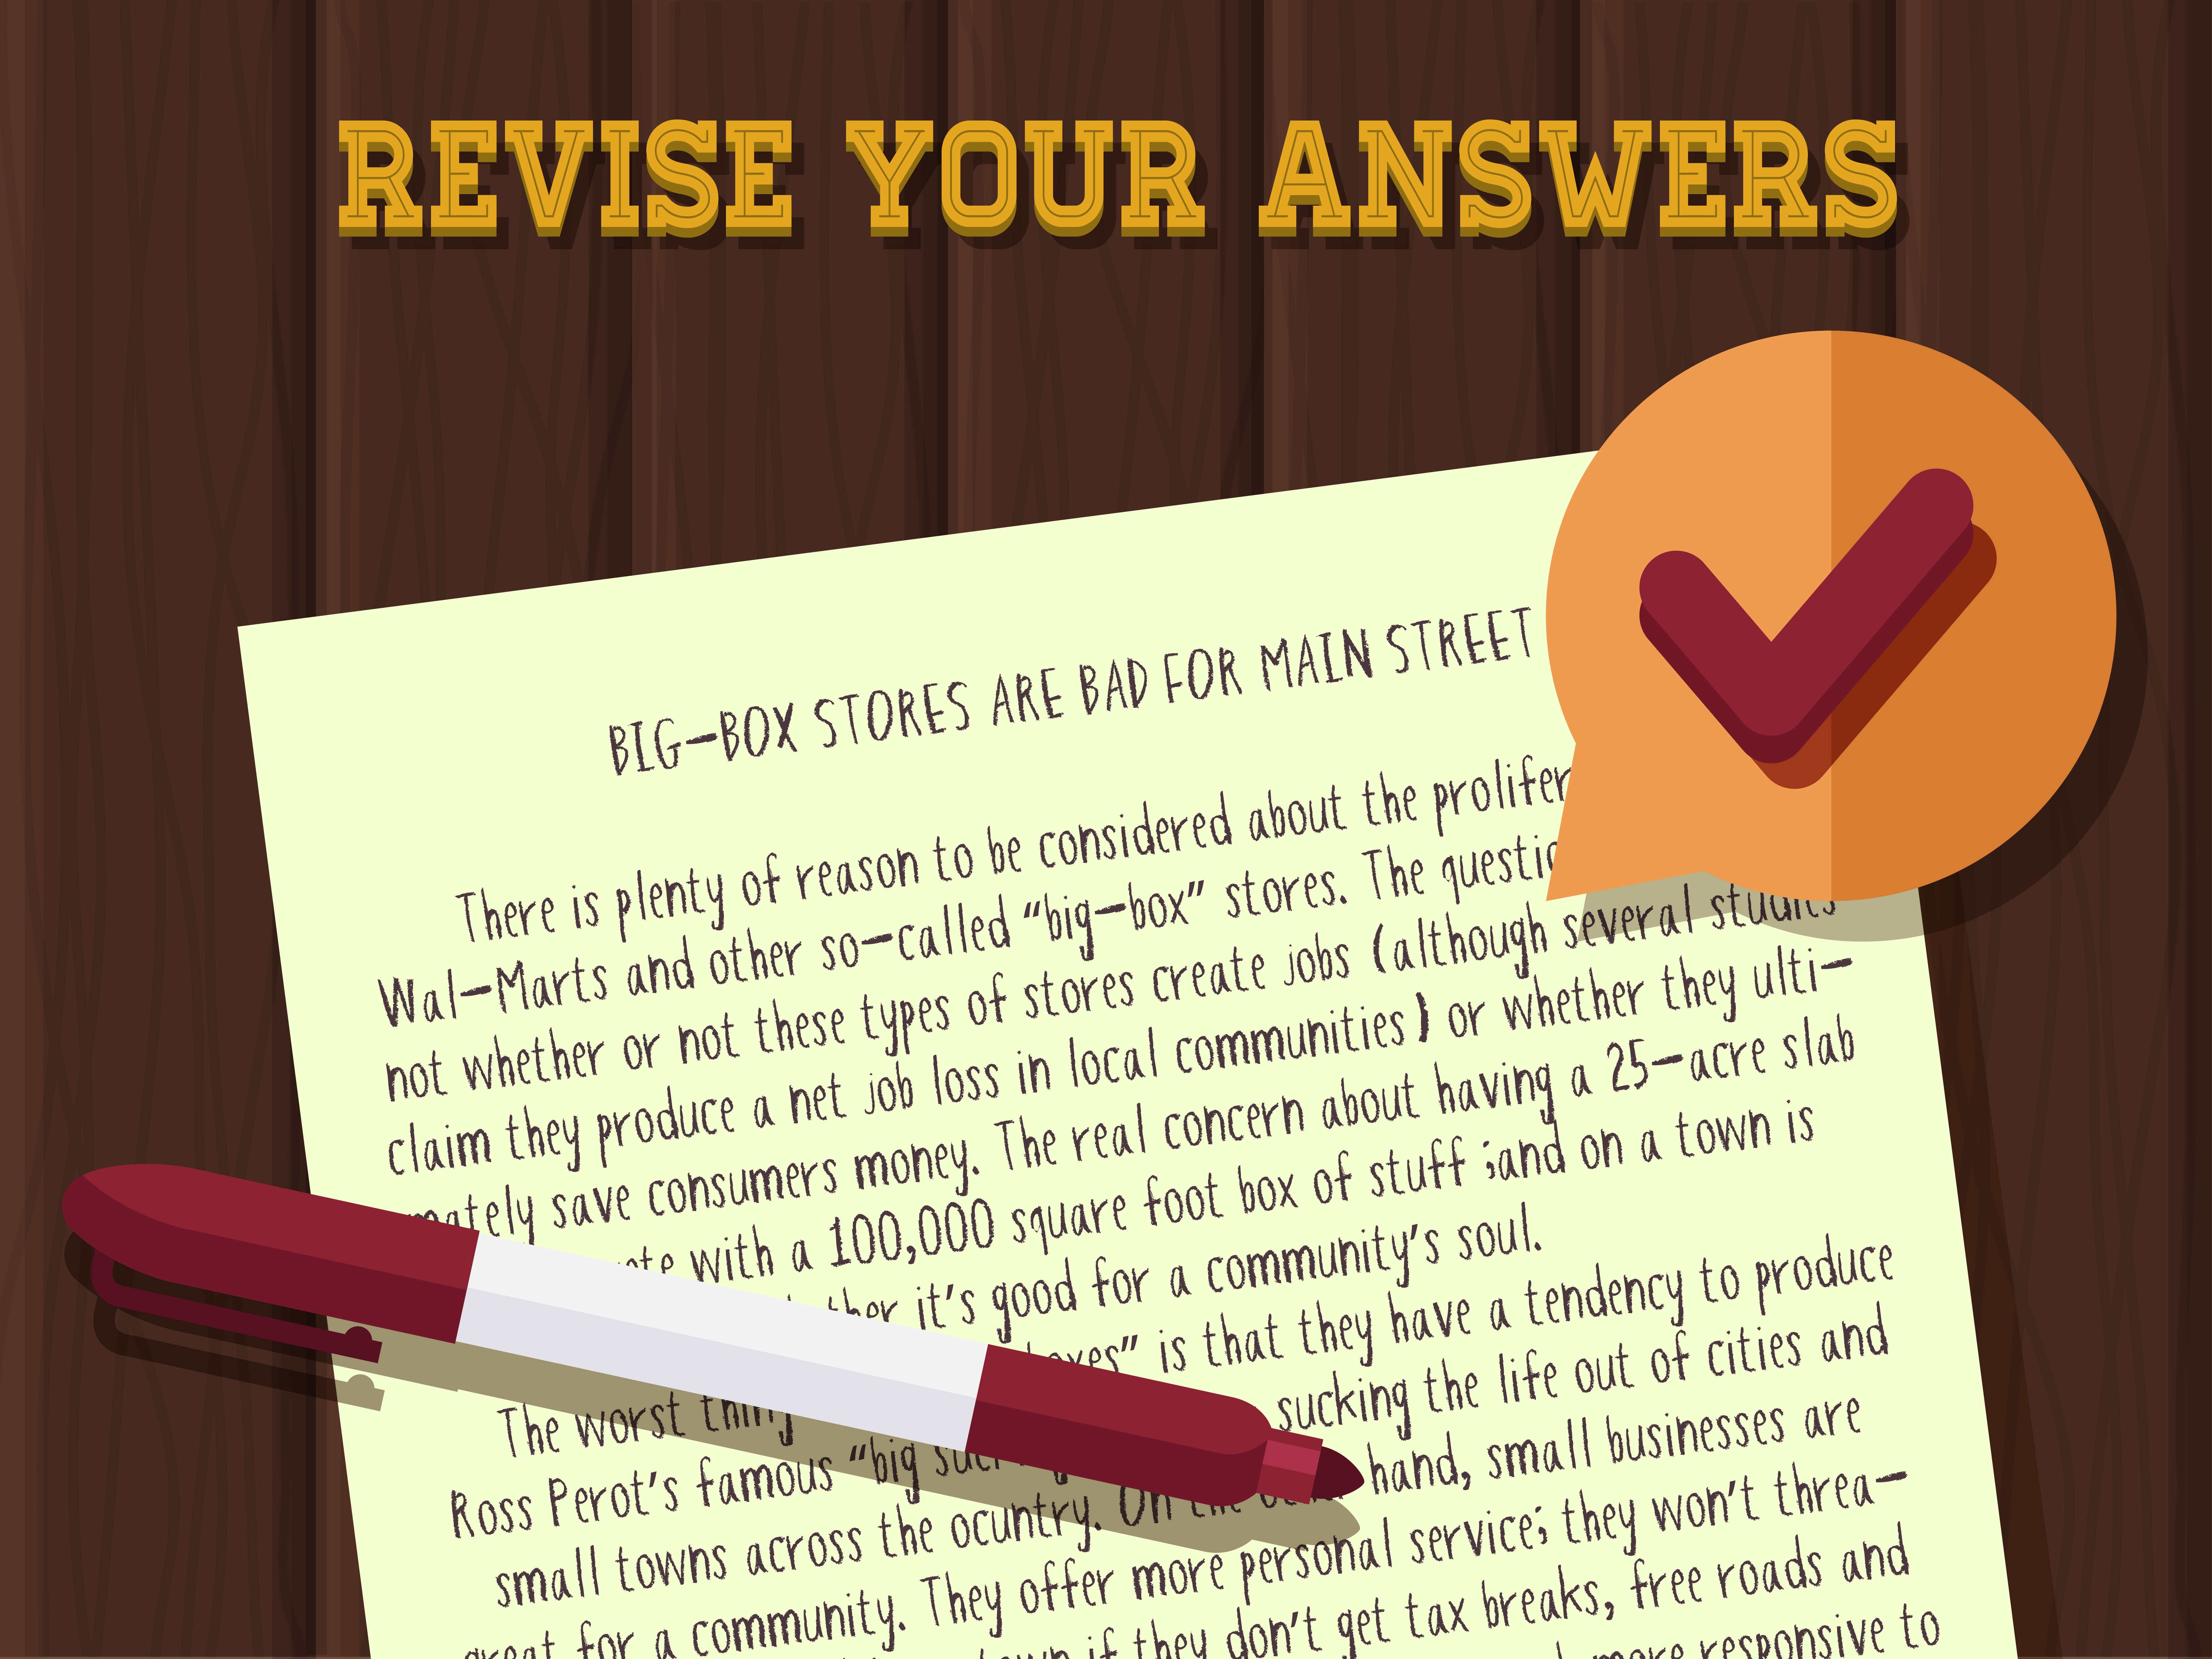 003 Essay Example Prepare For An Exam Step Incredible Examinations On Are Necessary Evils Board Full